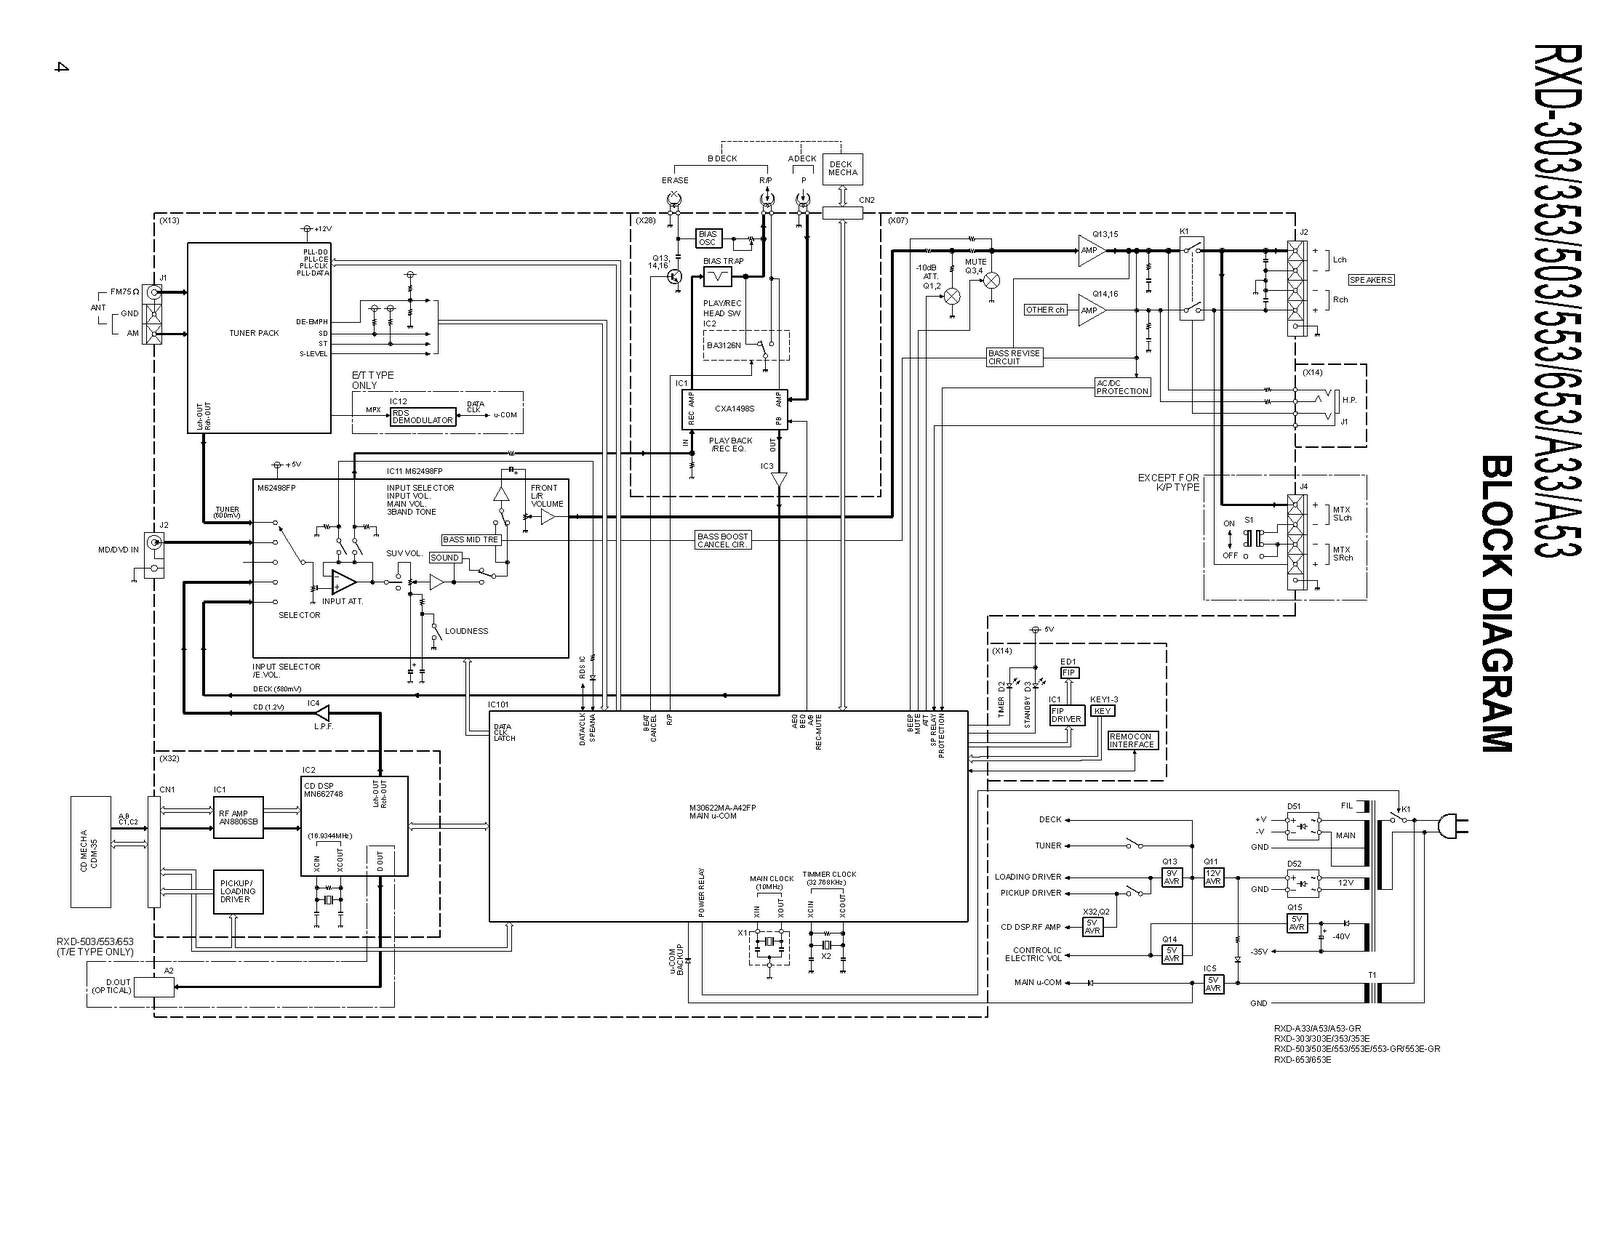 6700715 in addition Four Pole Solenoid Wiring Diagram additionally 3 Phase Motor Wiring Diagram 9 Wire also Wiring Diagram For A 2 Sd 3 Phase Motor as well Rs485 Multi Drop Wiring. on two sd three phase motor wiring diagram